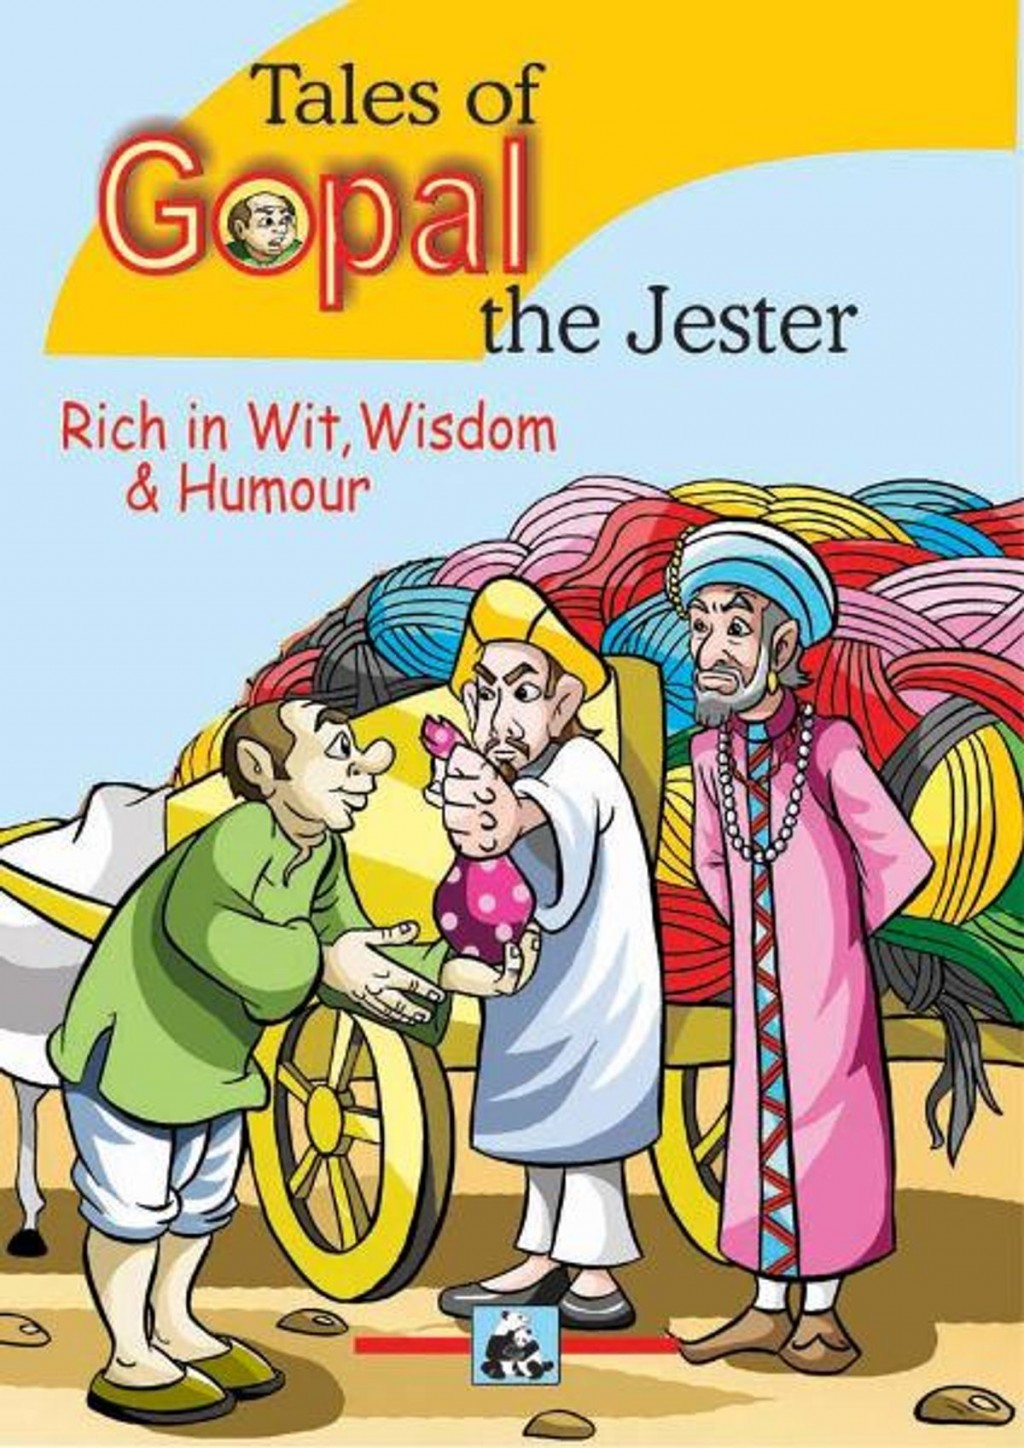 001 Essay Example Tales Of Gopal The Jester Rich In Wit Wisdom Humour Unusual And Short On Large